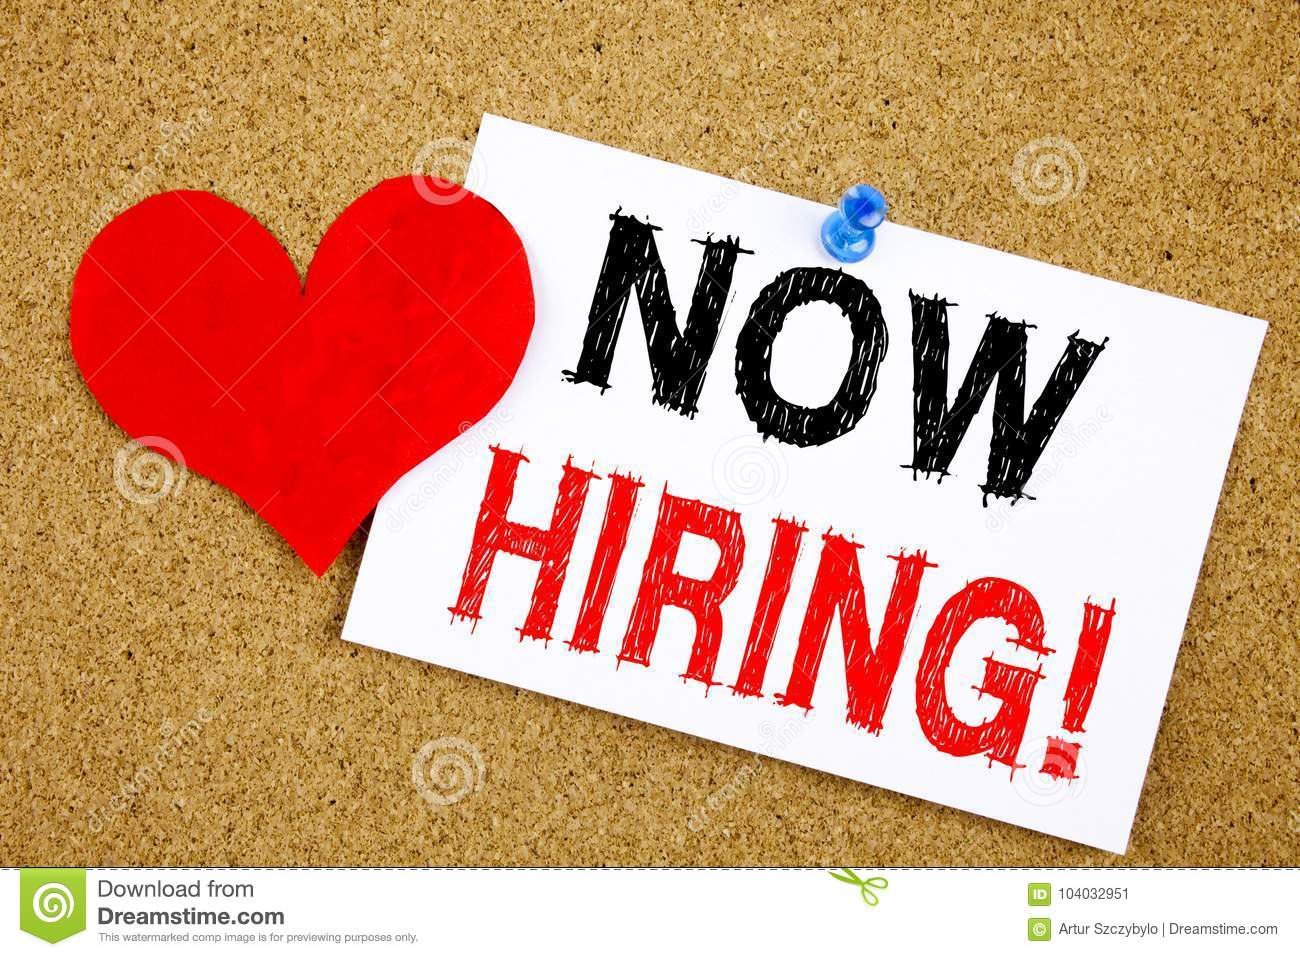 Conceptual hand writing text caption inspiration showing Now Hiring. Business concept for Recruitment and Job recruiting advertise